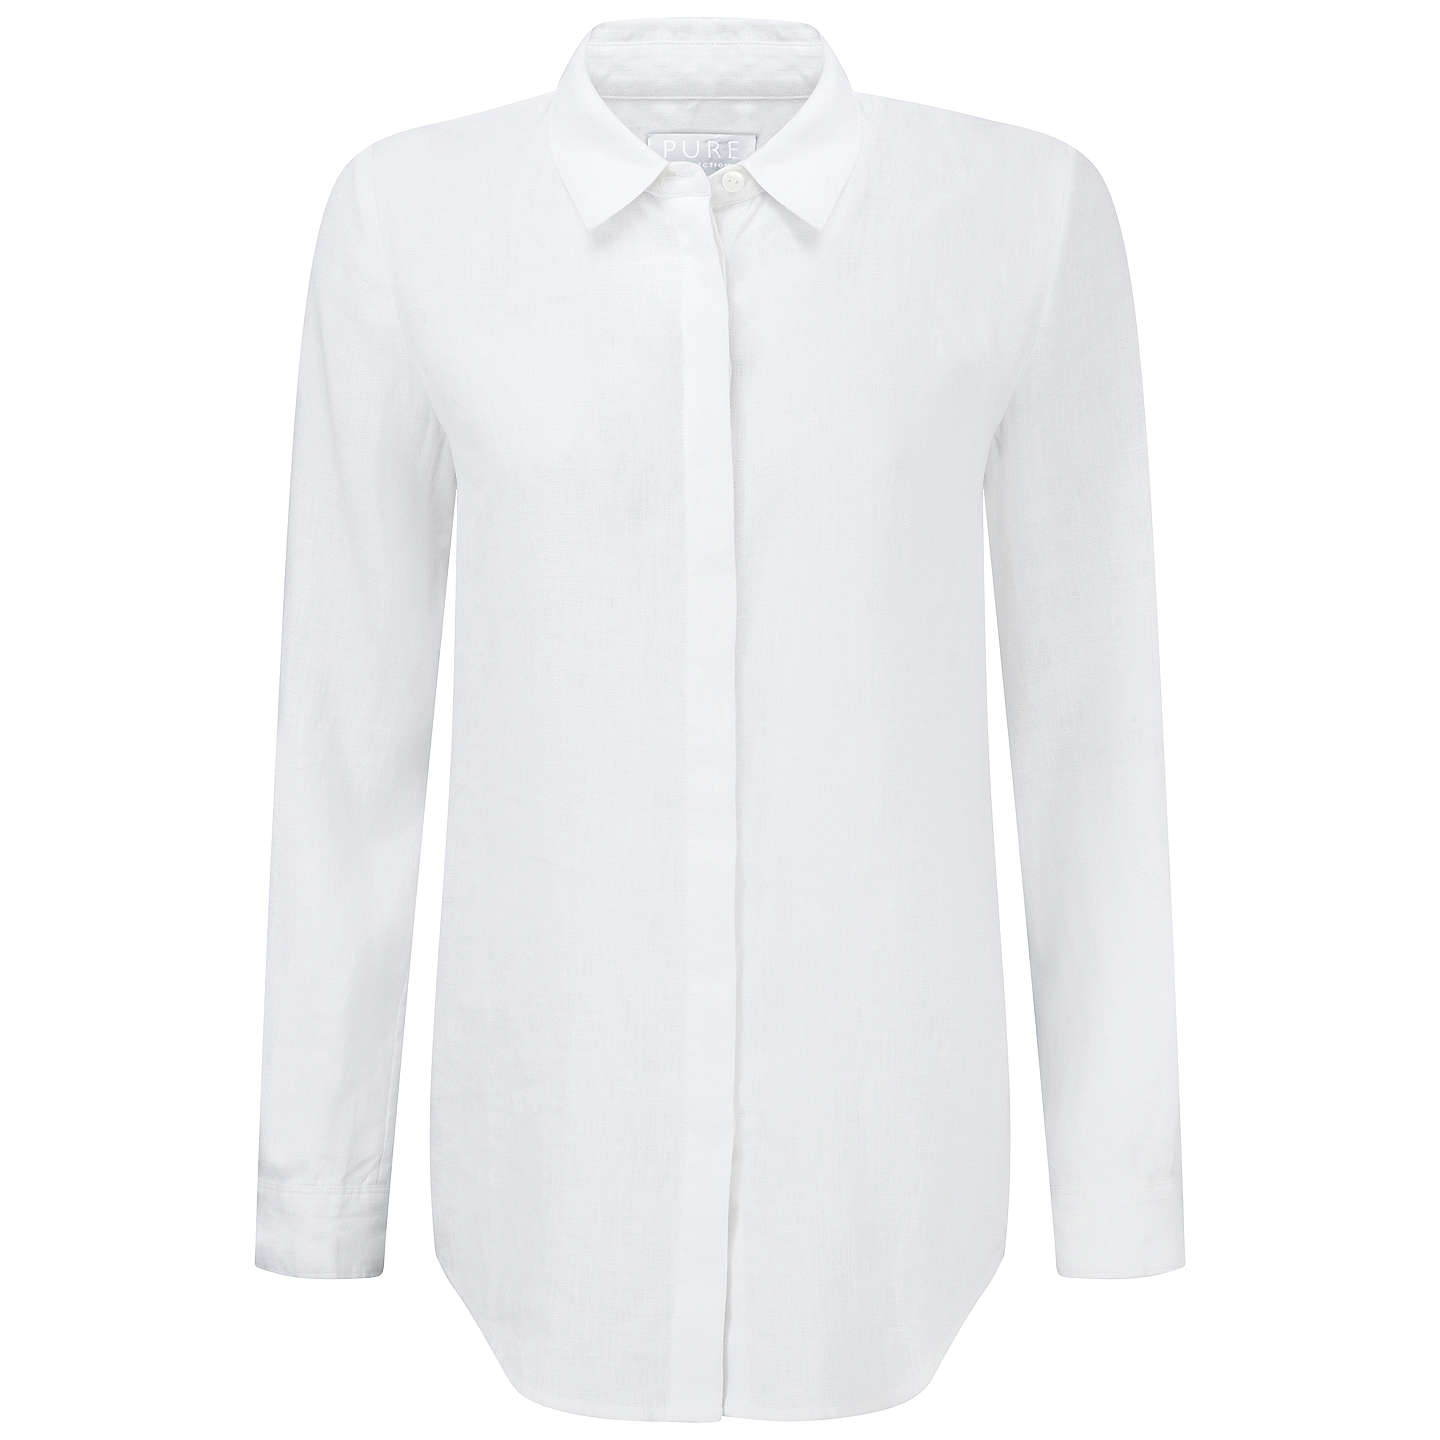 BuyPure Collection Laundered Linen Shirt, White, 8 Online at johnlewis.com